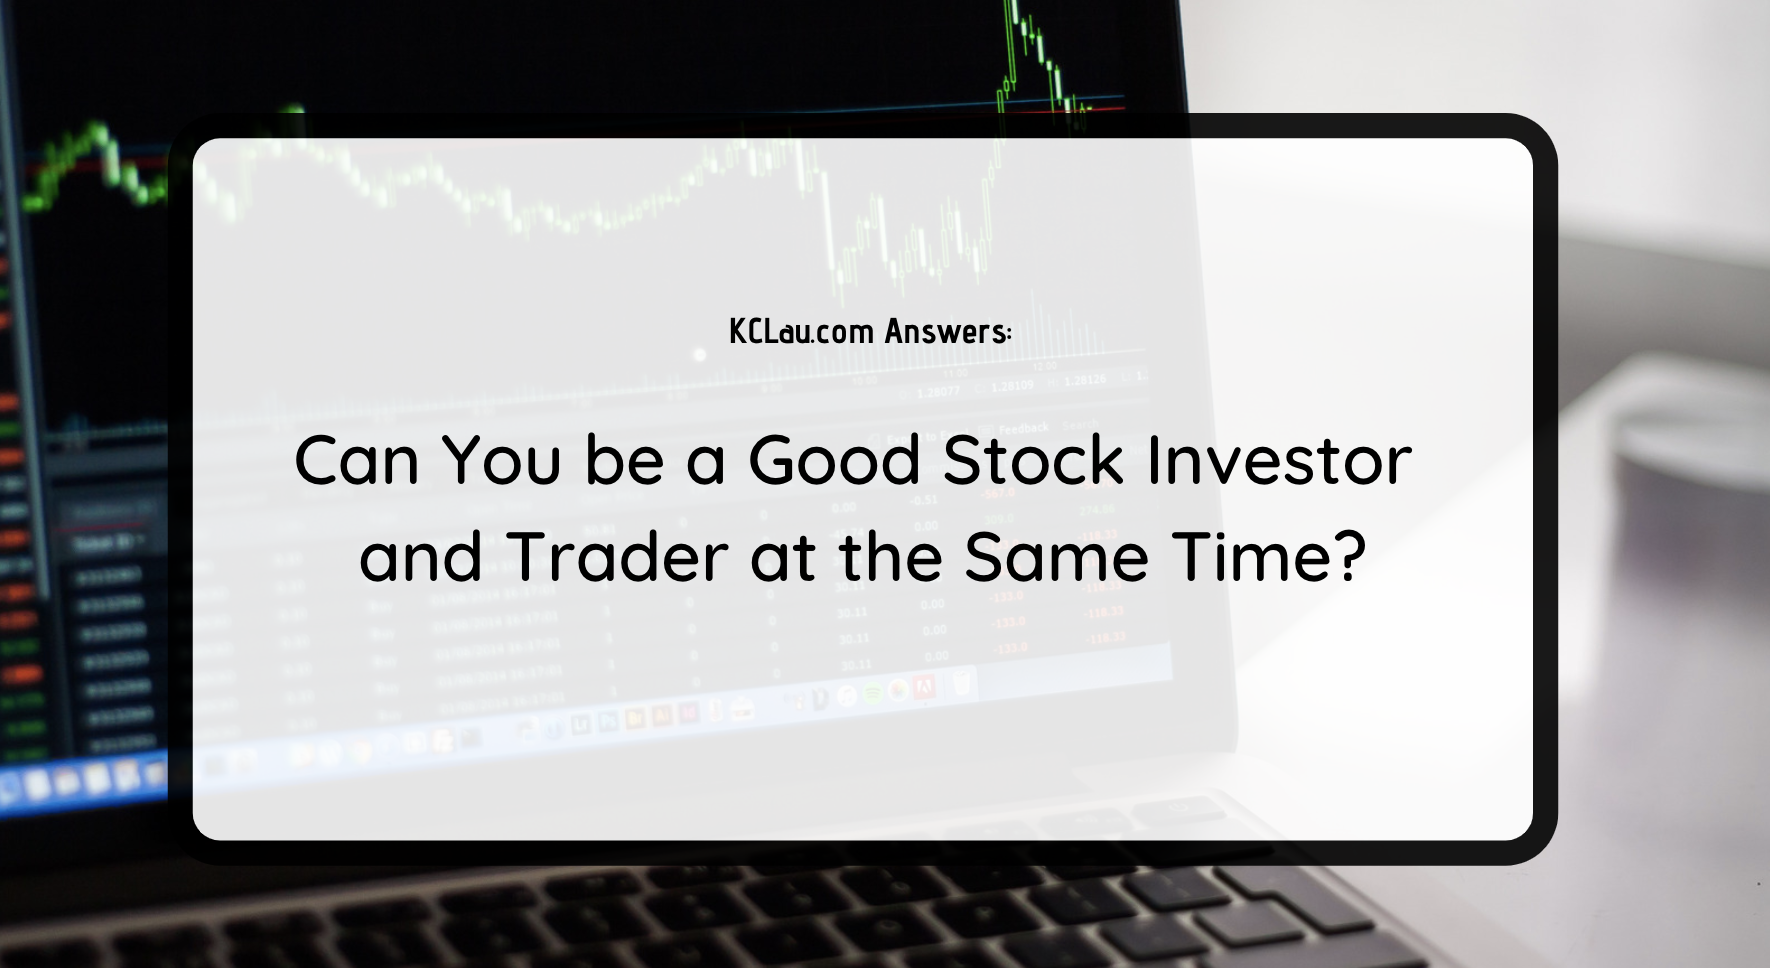 Can You be a Good Stock Investor and Trader at the Same Time?